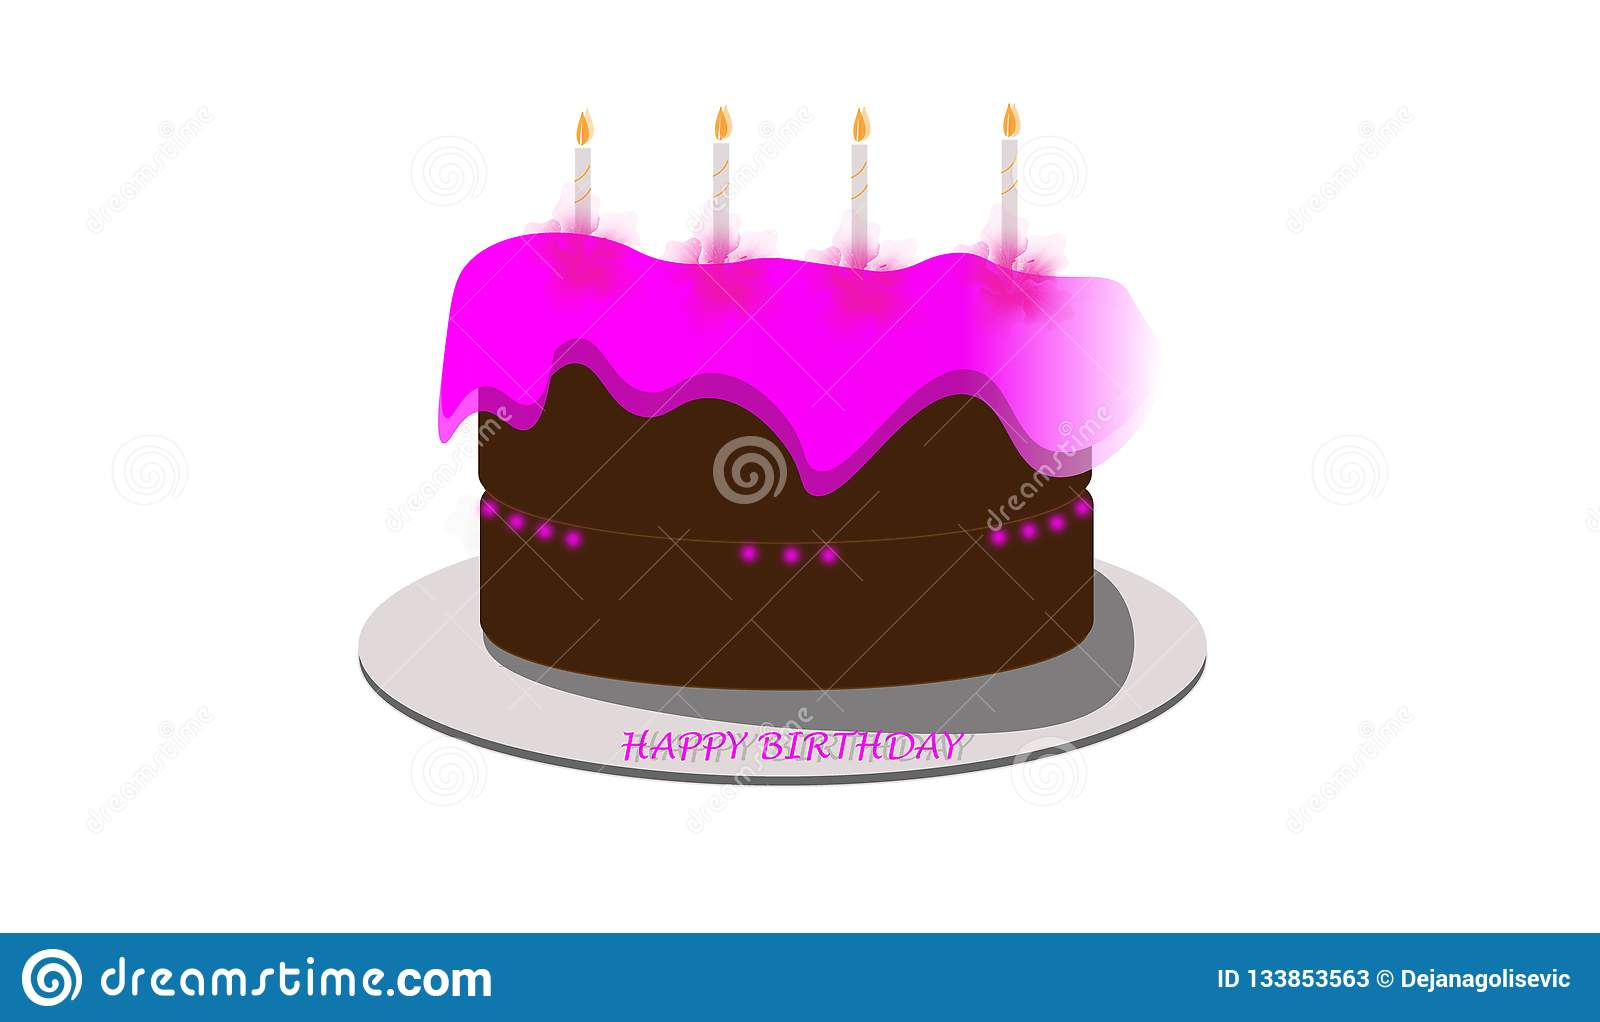 Pink And Brown Birthday Cake For Girls With Magic Candles